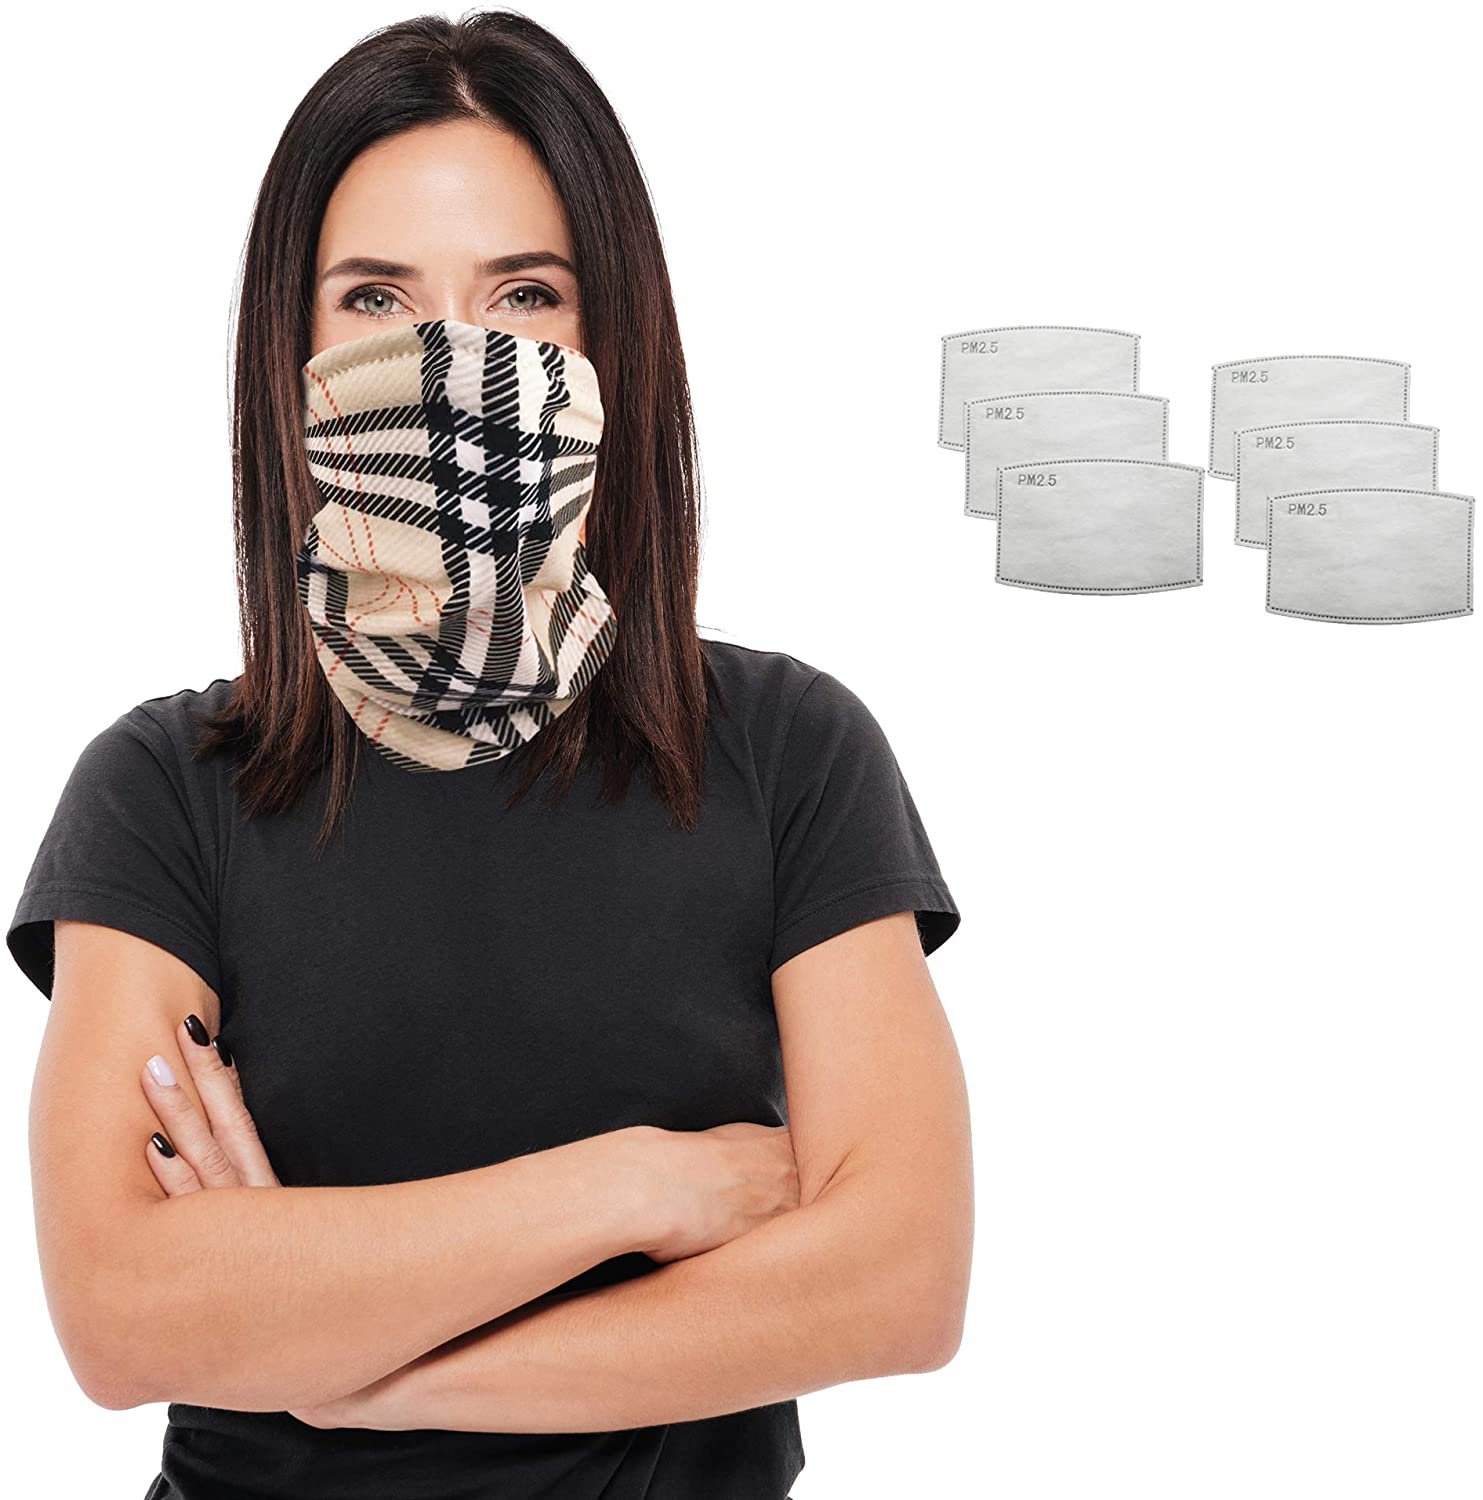 Bandana Scarf Face Mask with 2 Carbon Filters - Cloth Headband for Women